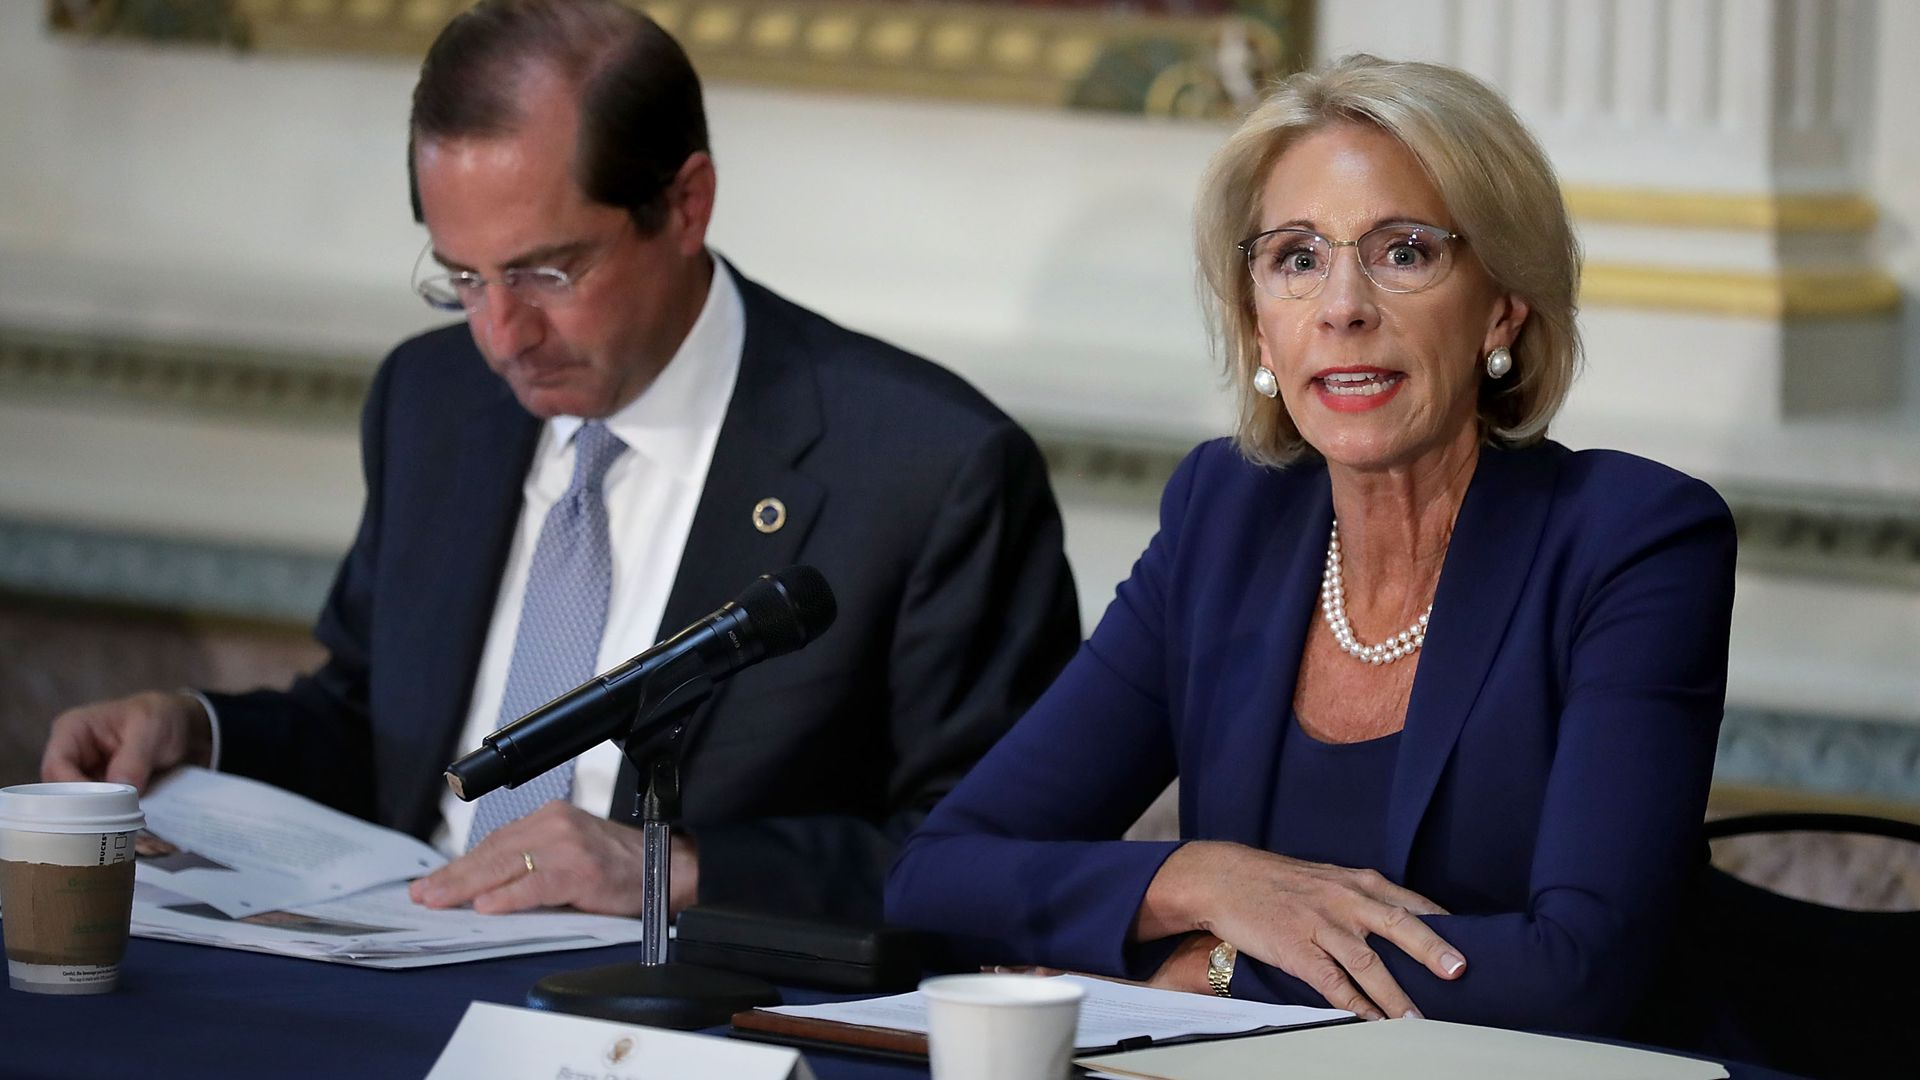 Education Secretary Betsy DeVos sitting at a table.